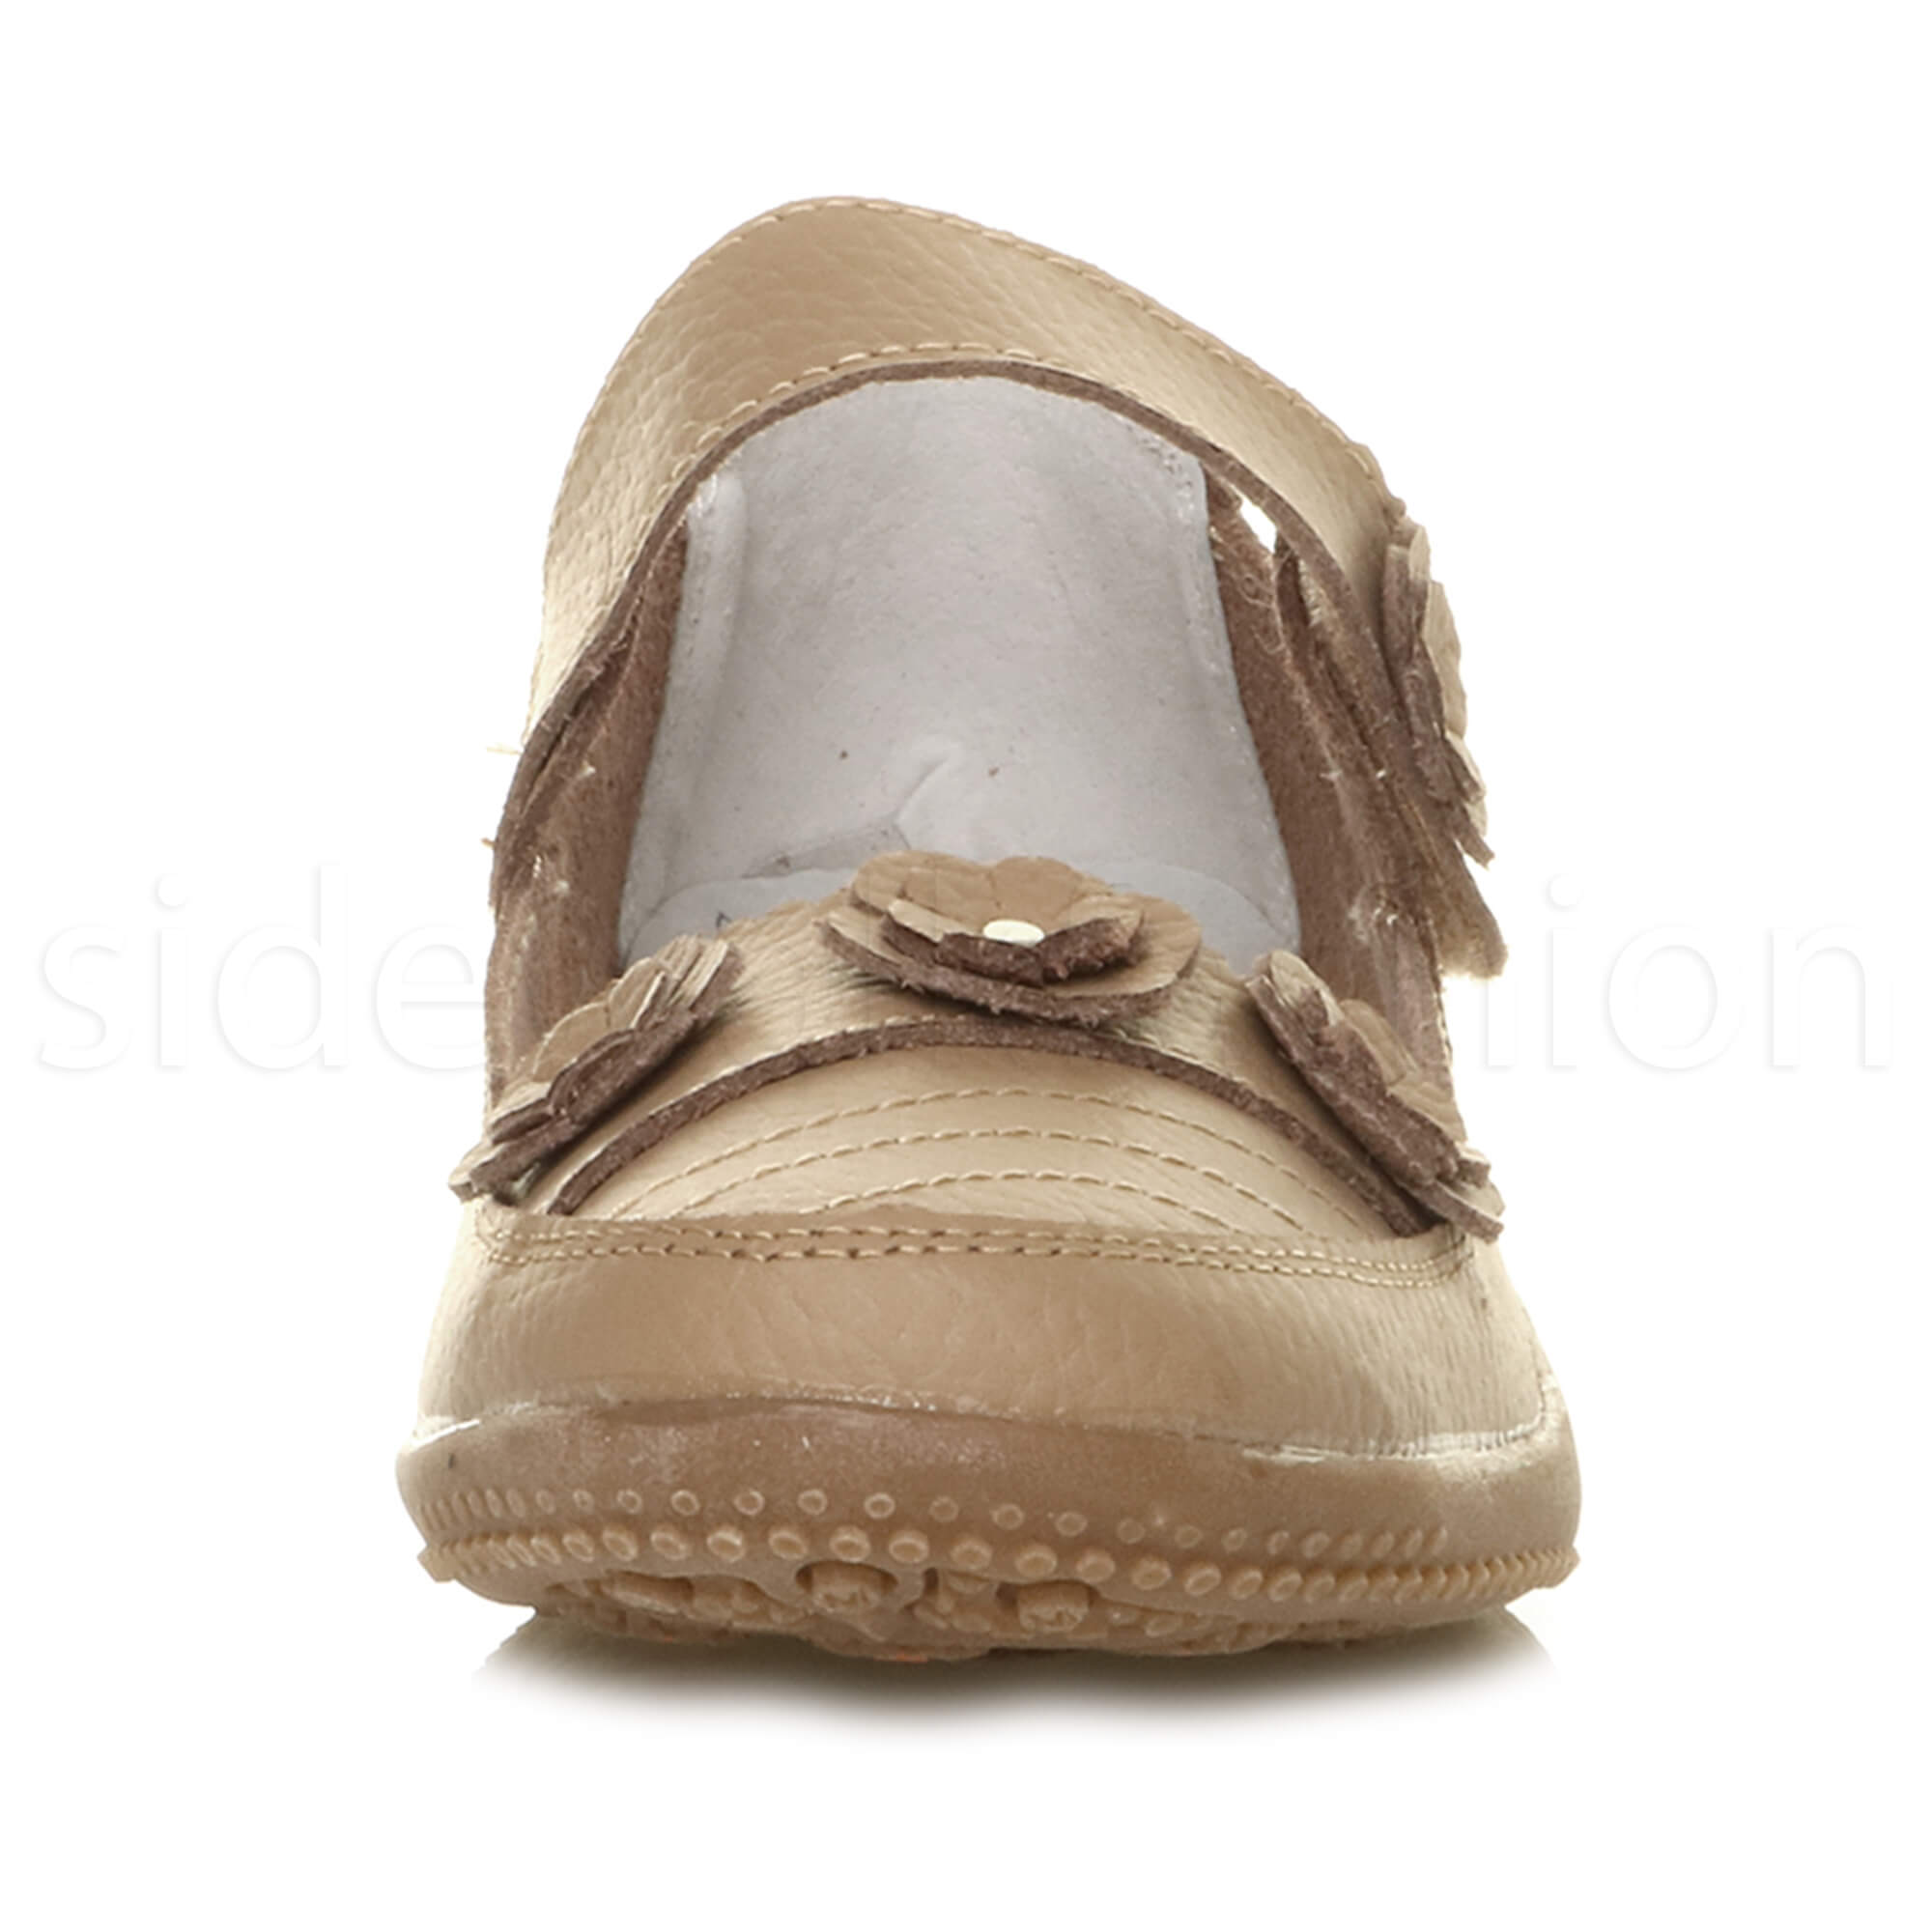 Womens-ladies-leather-comfort-walking-casual-sandals-mary-jane-strap-shoes-size thumbnail 6